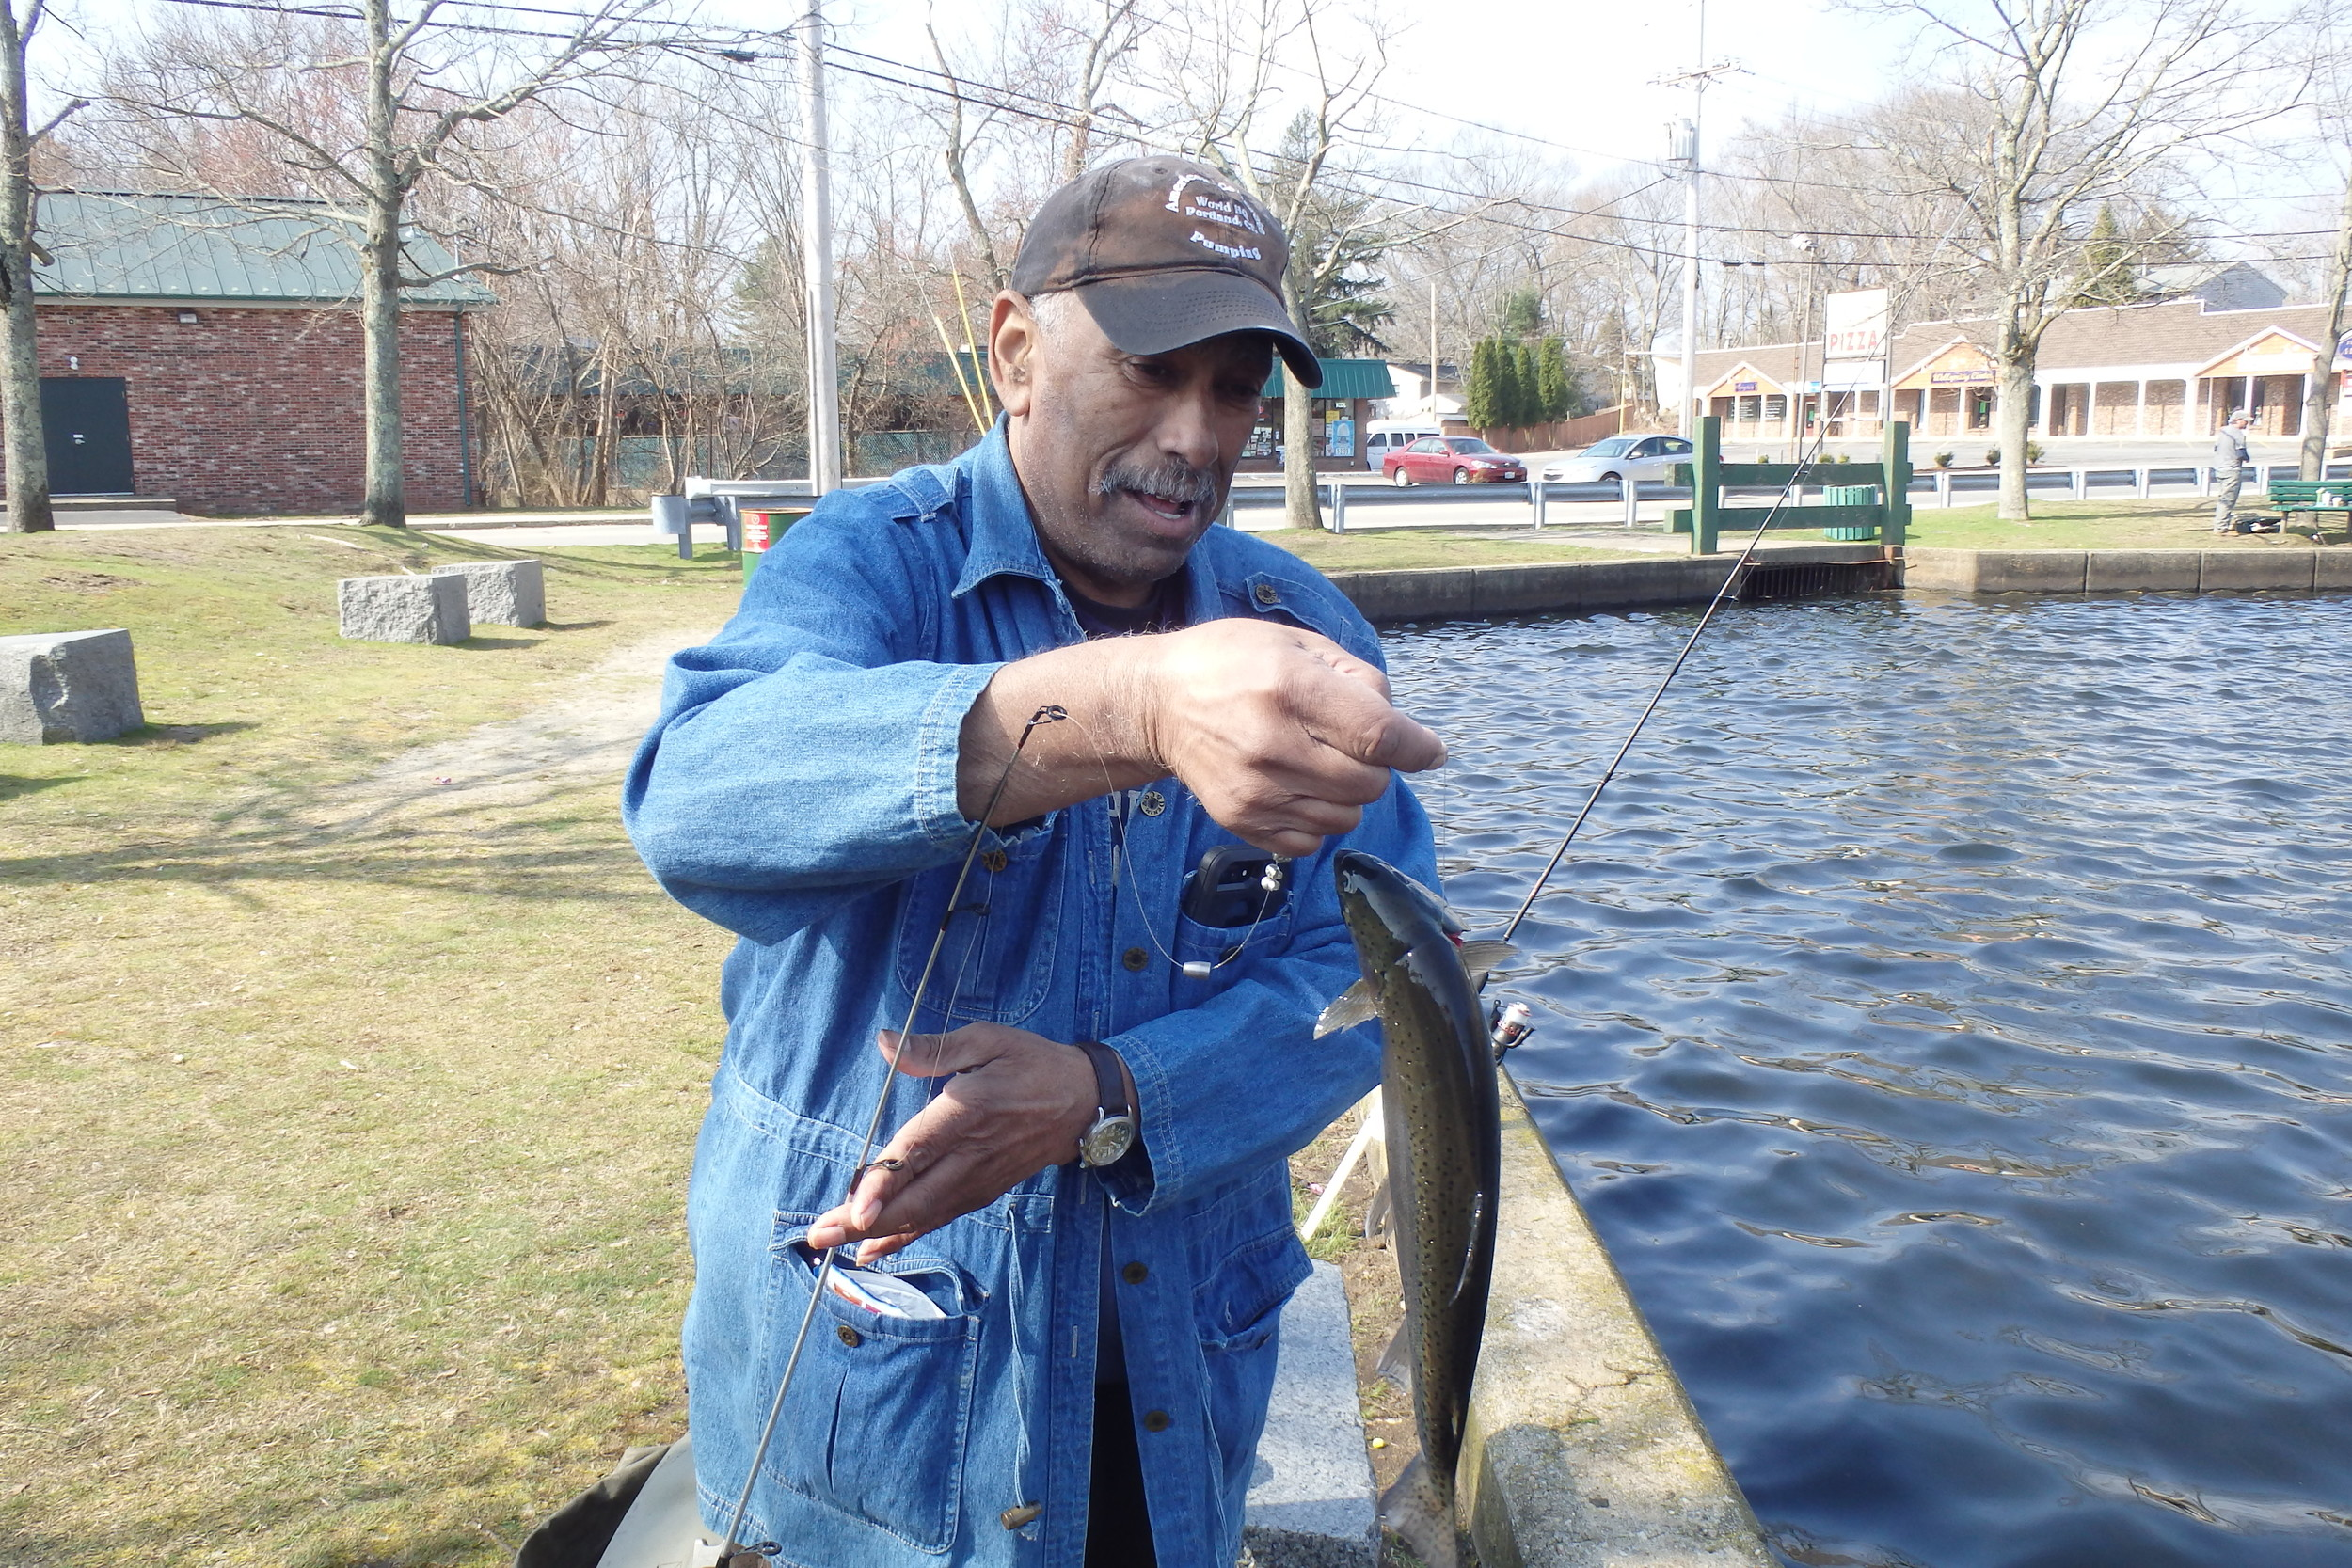 Steve Gomes of East Providence with a rainbow trout he hooked at Willet Avenue Pond.